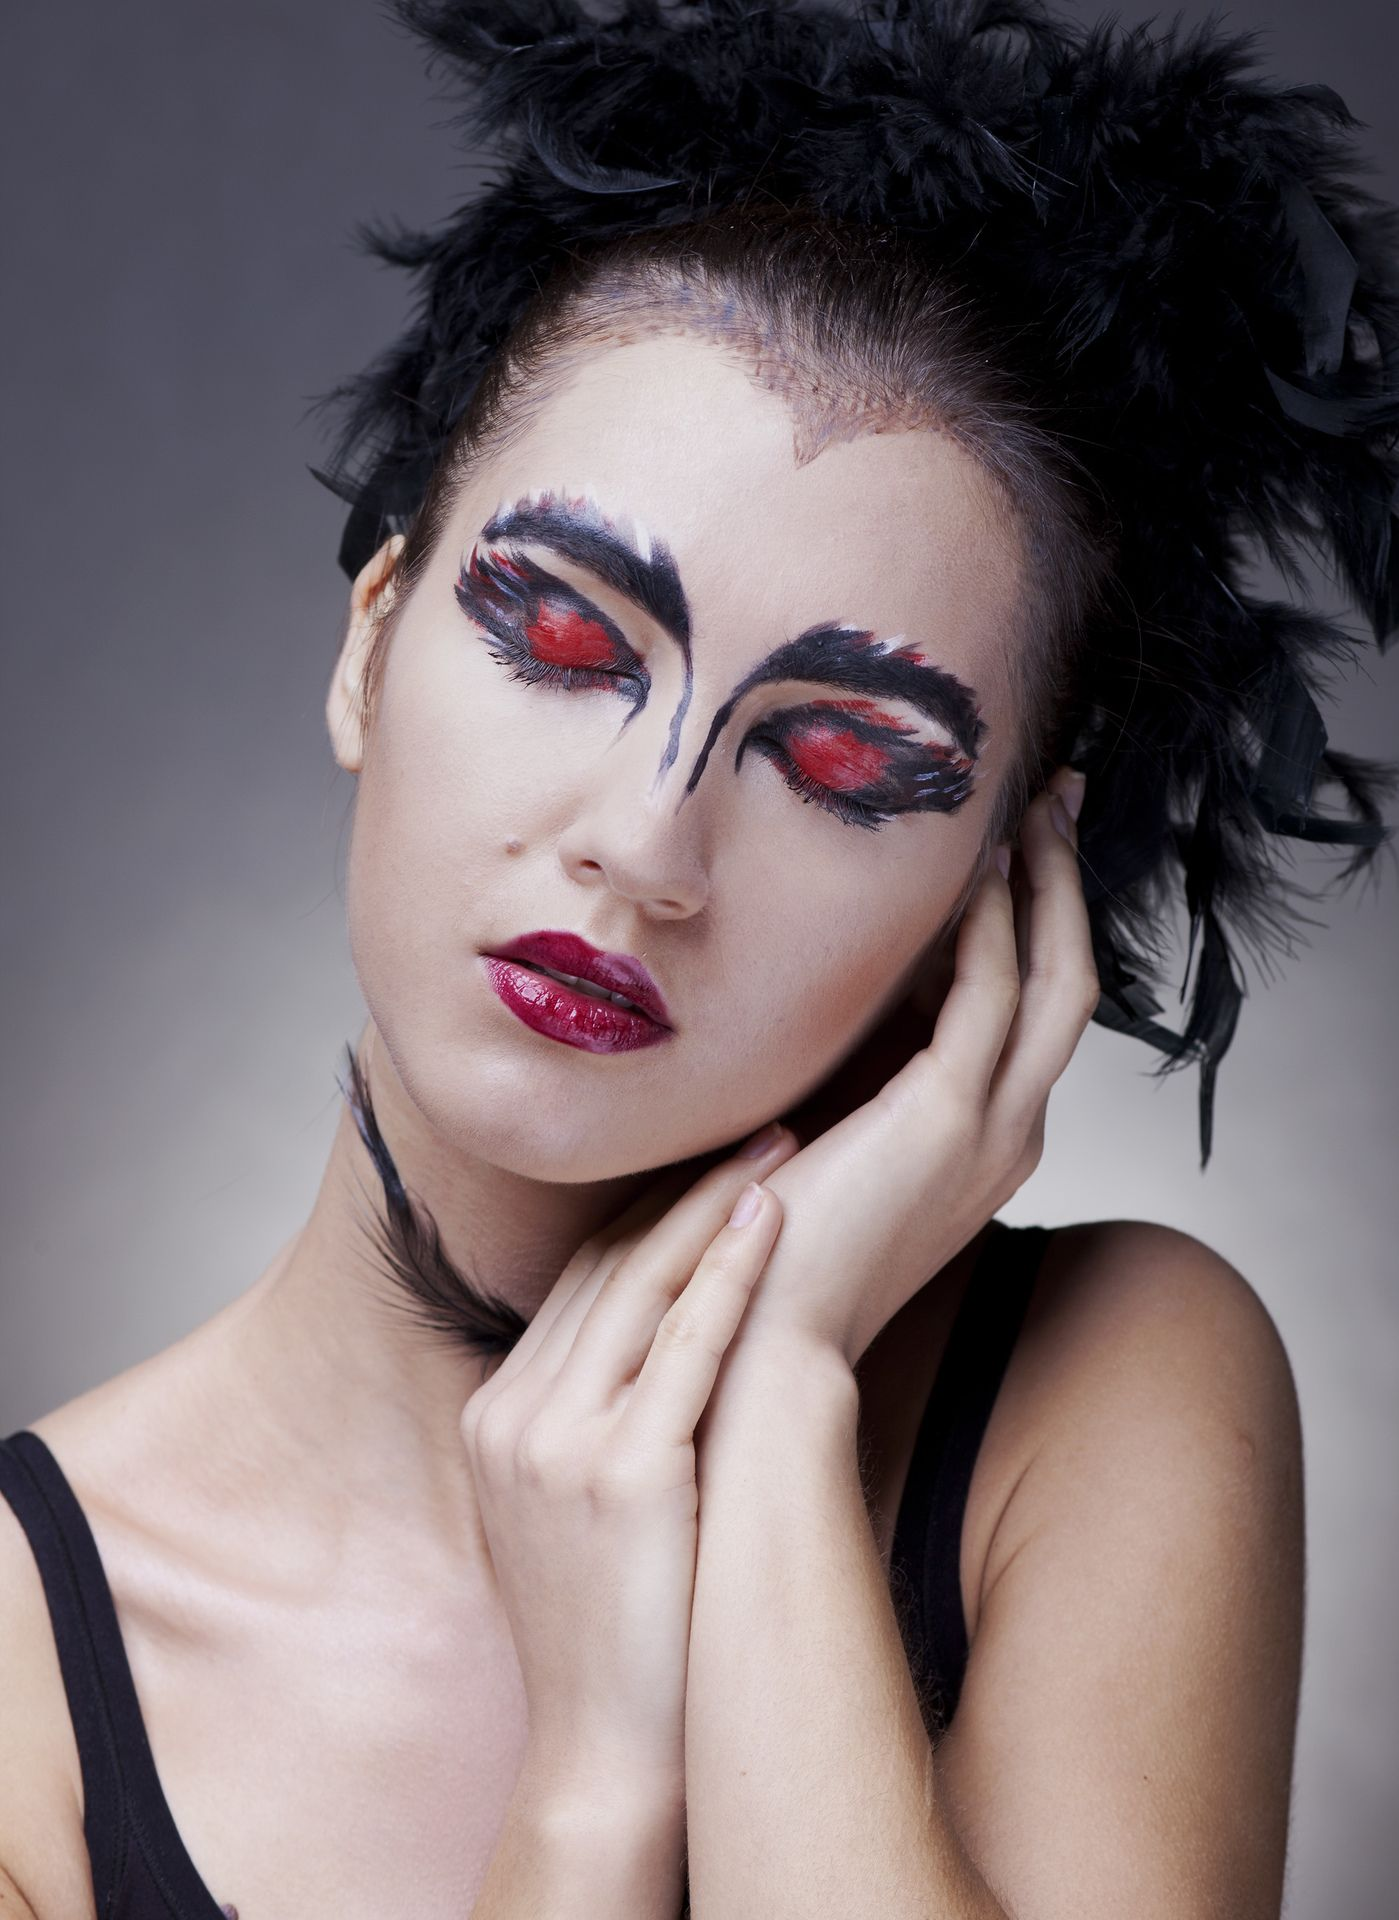 Ballet stage makeup, The Black Swan, dancer, classical